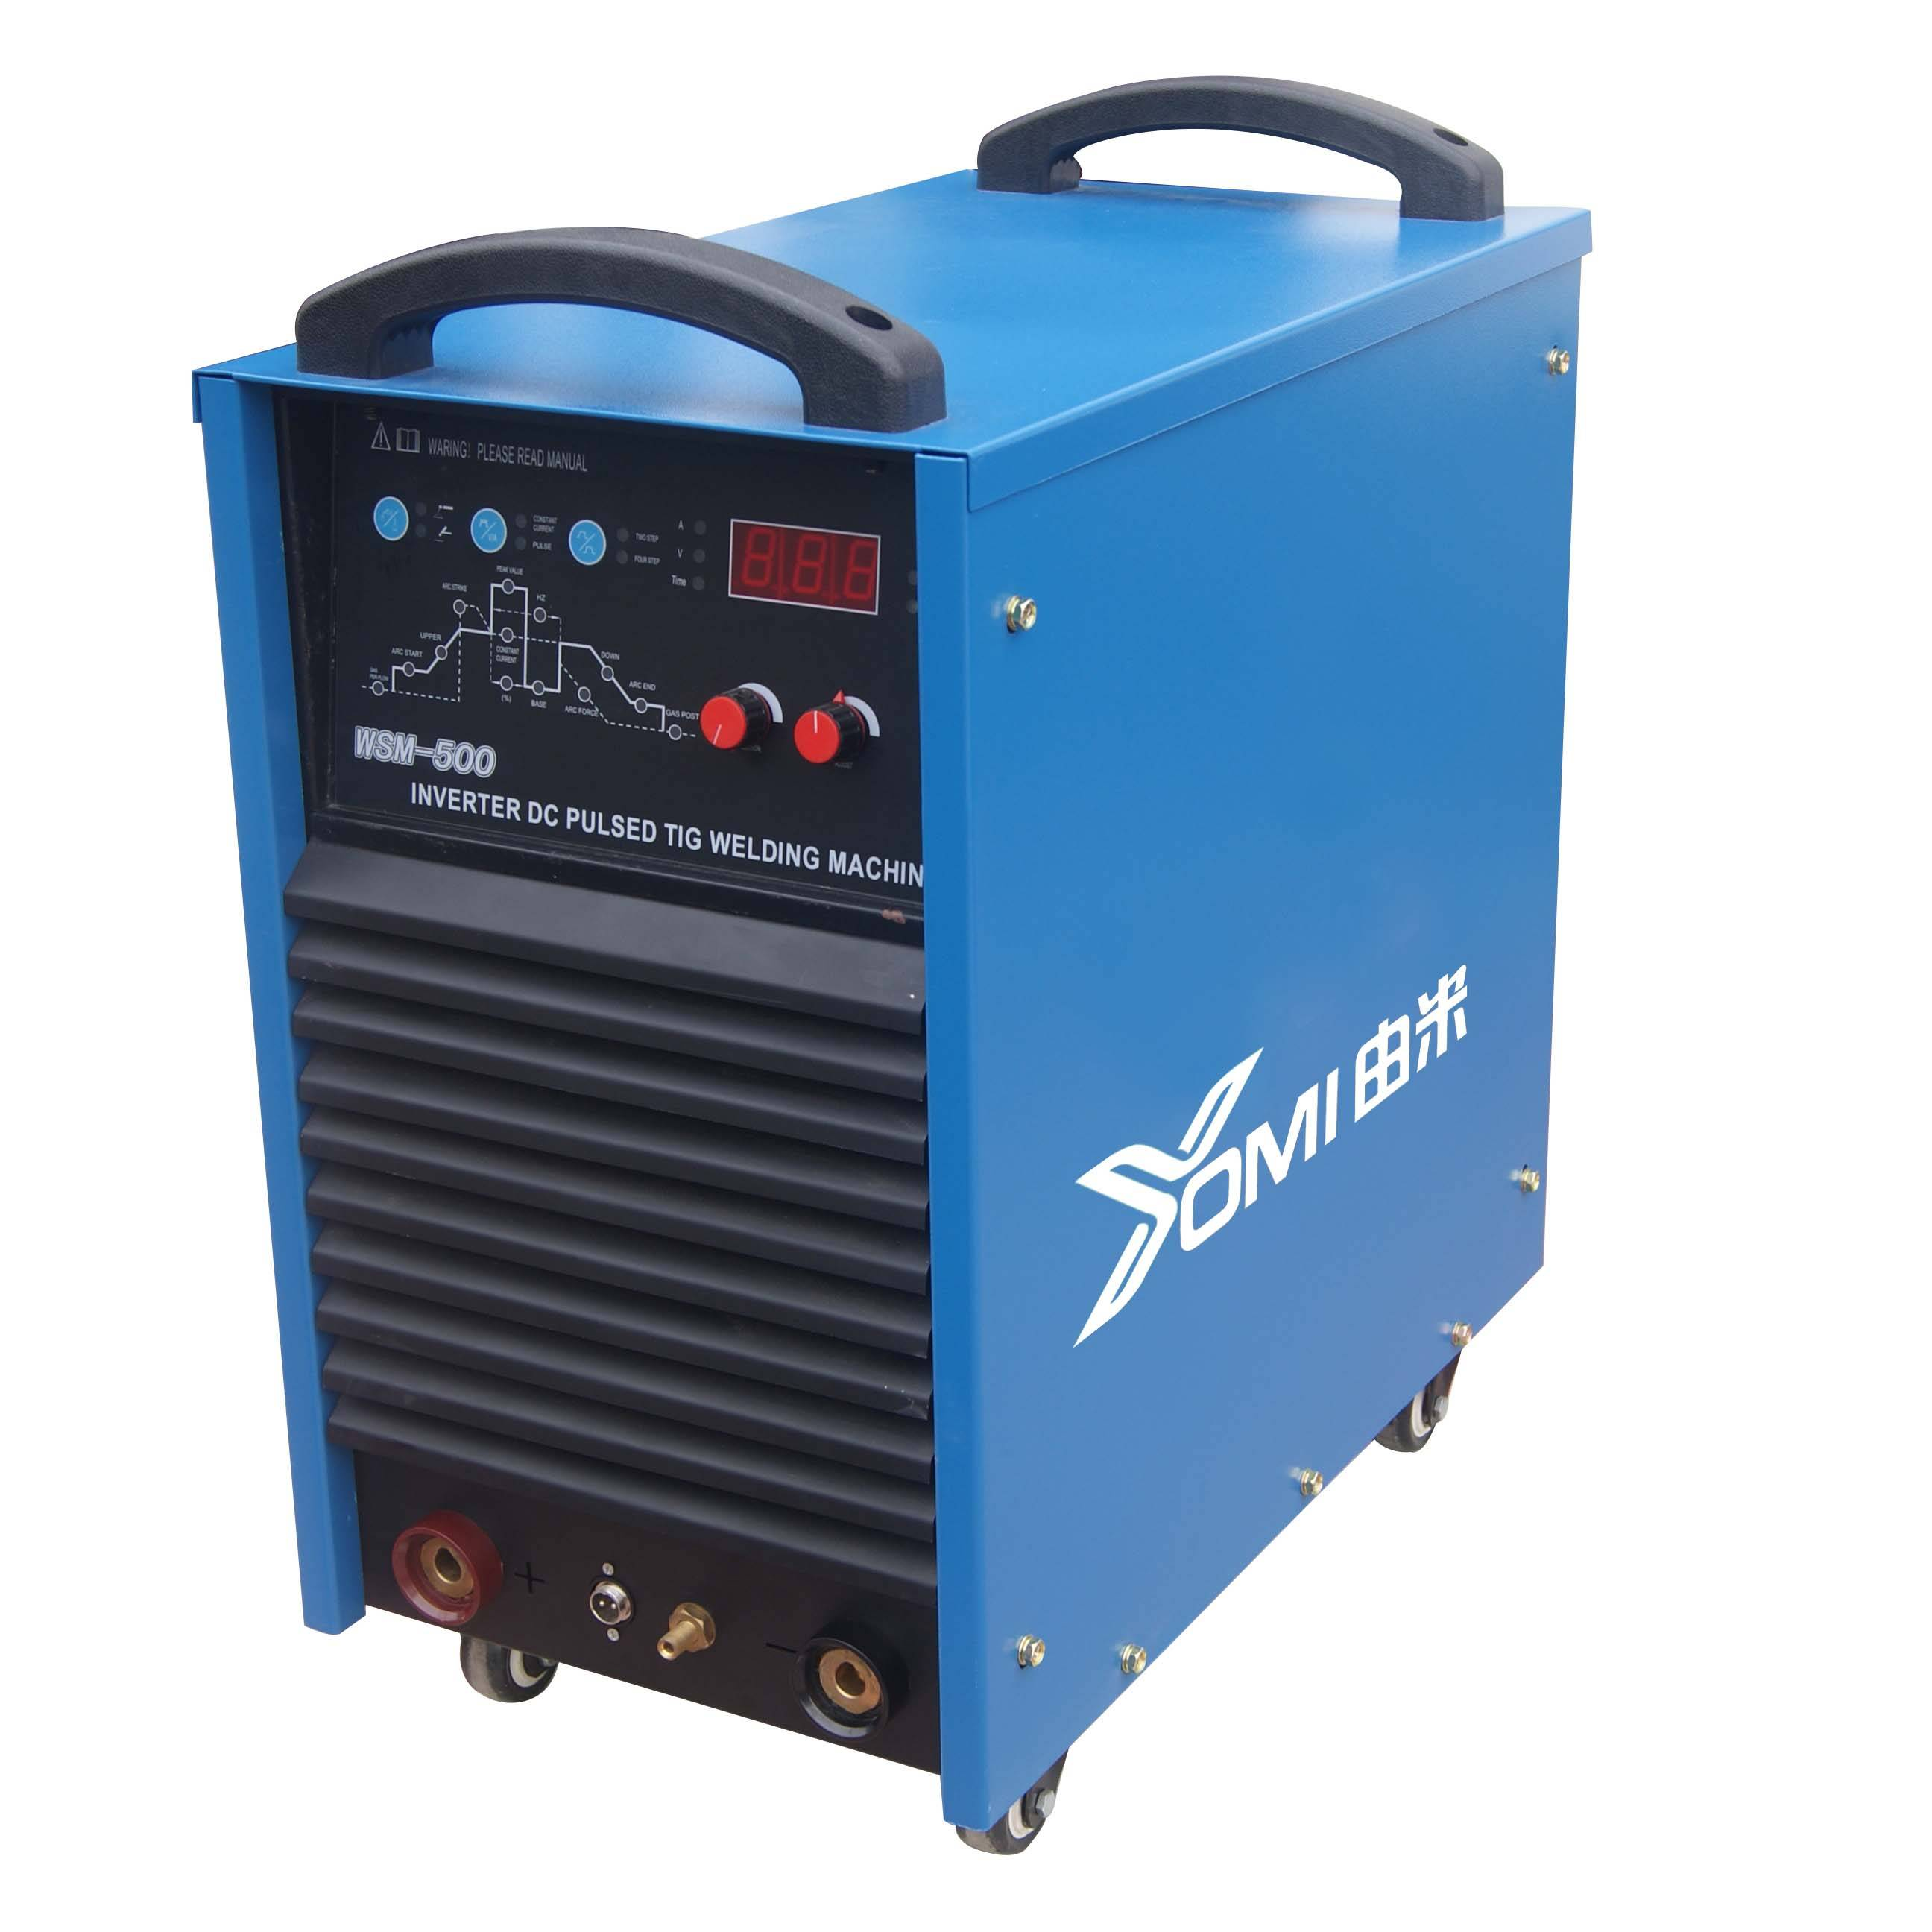 Special Design for Portable Tig Welding Machine -